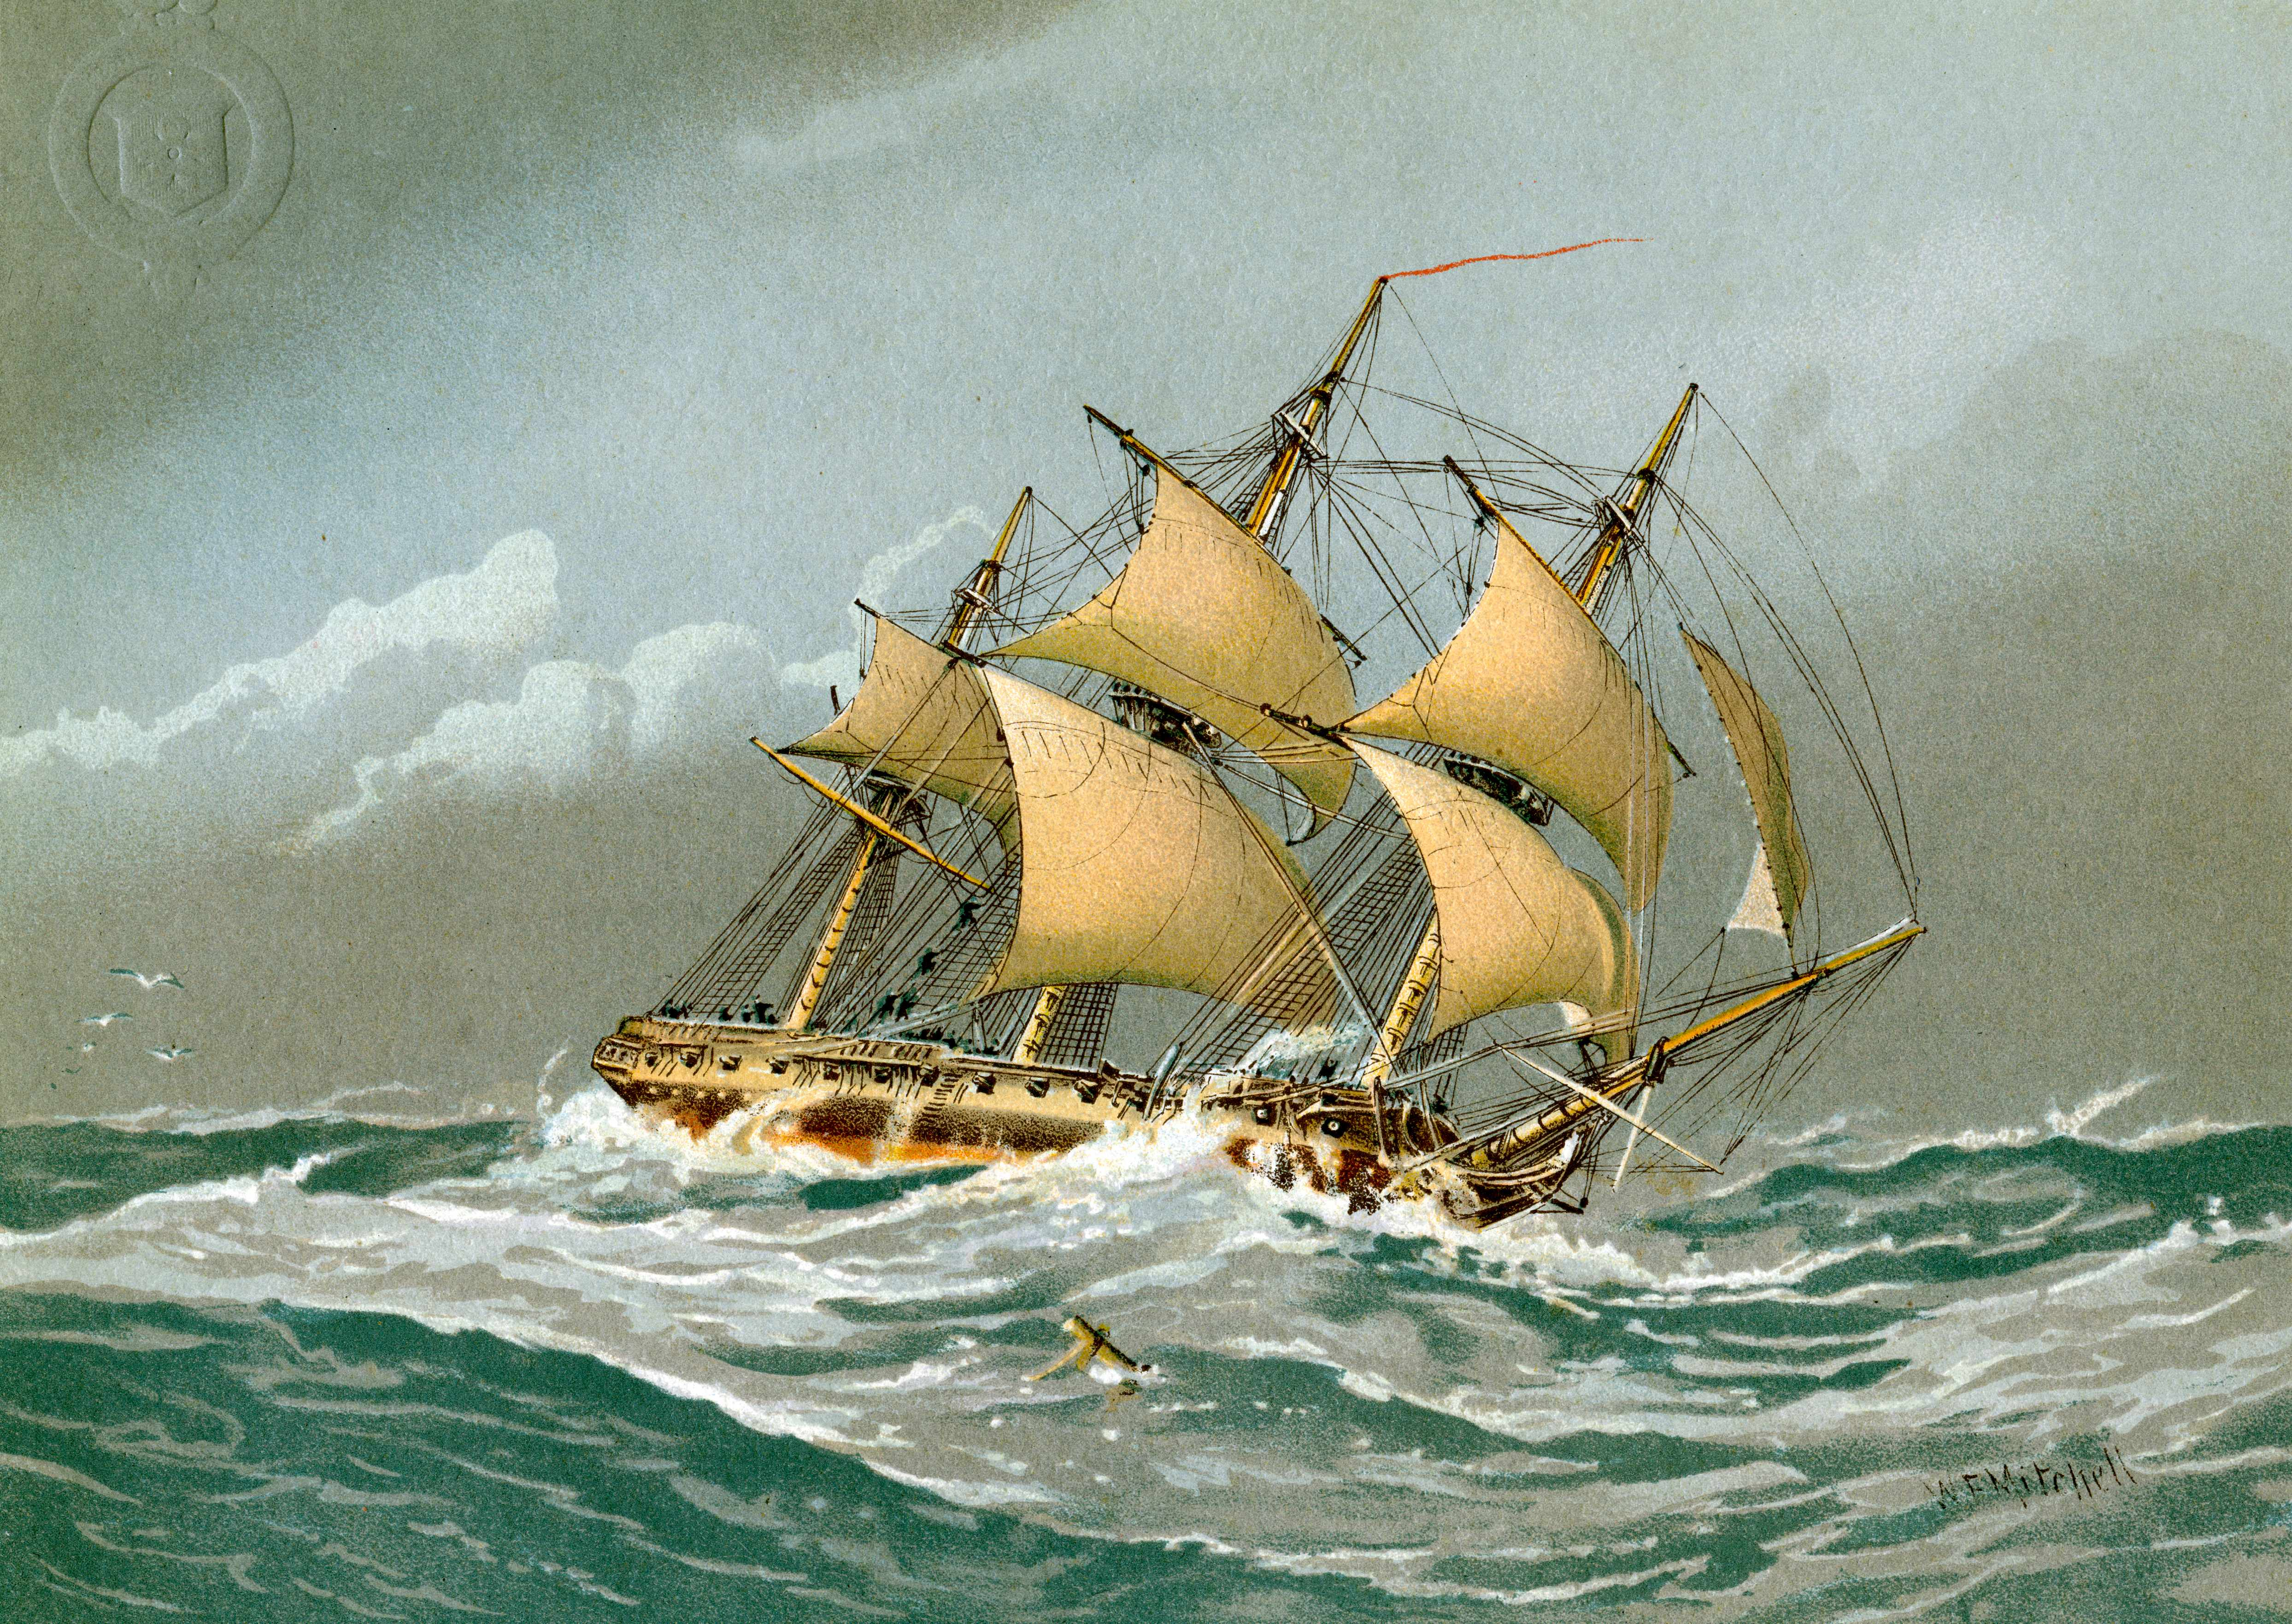 A Royal Navy 28 gun frigate c1794